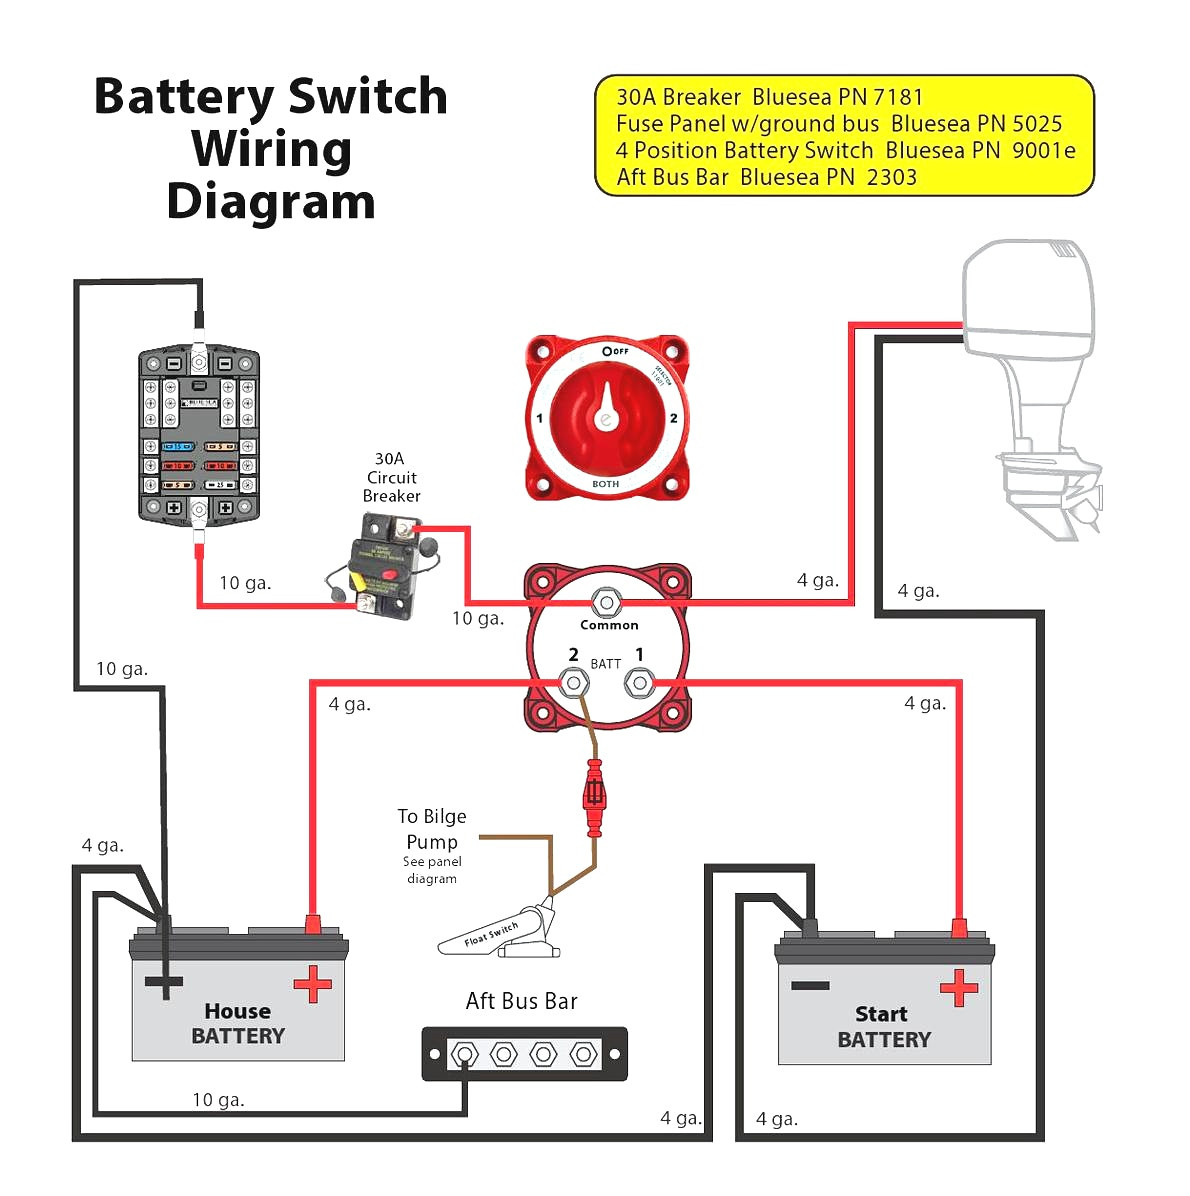 Battery Isolator Wiring Diagram For | Wiring Library - Trailer Wiring Diagram With Battery